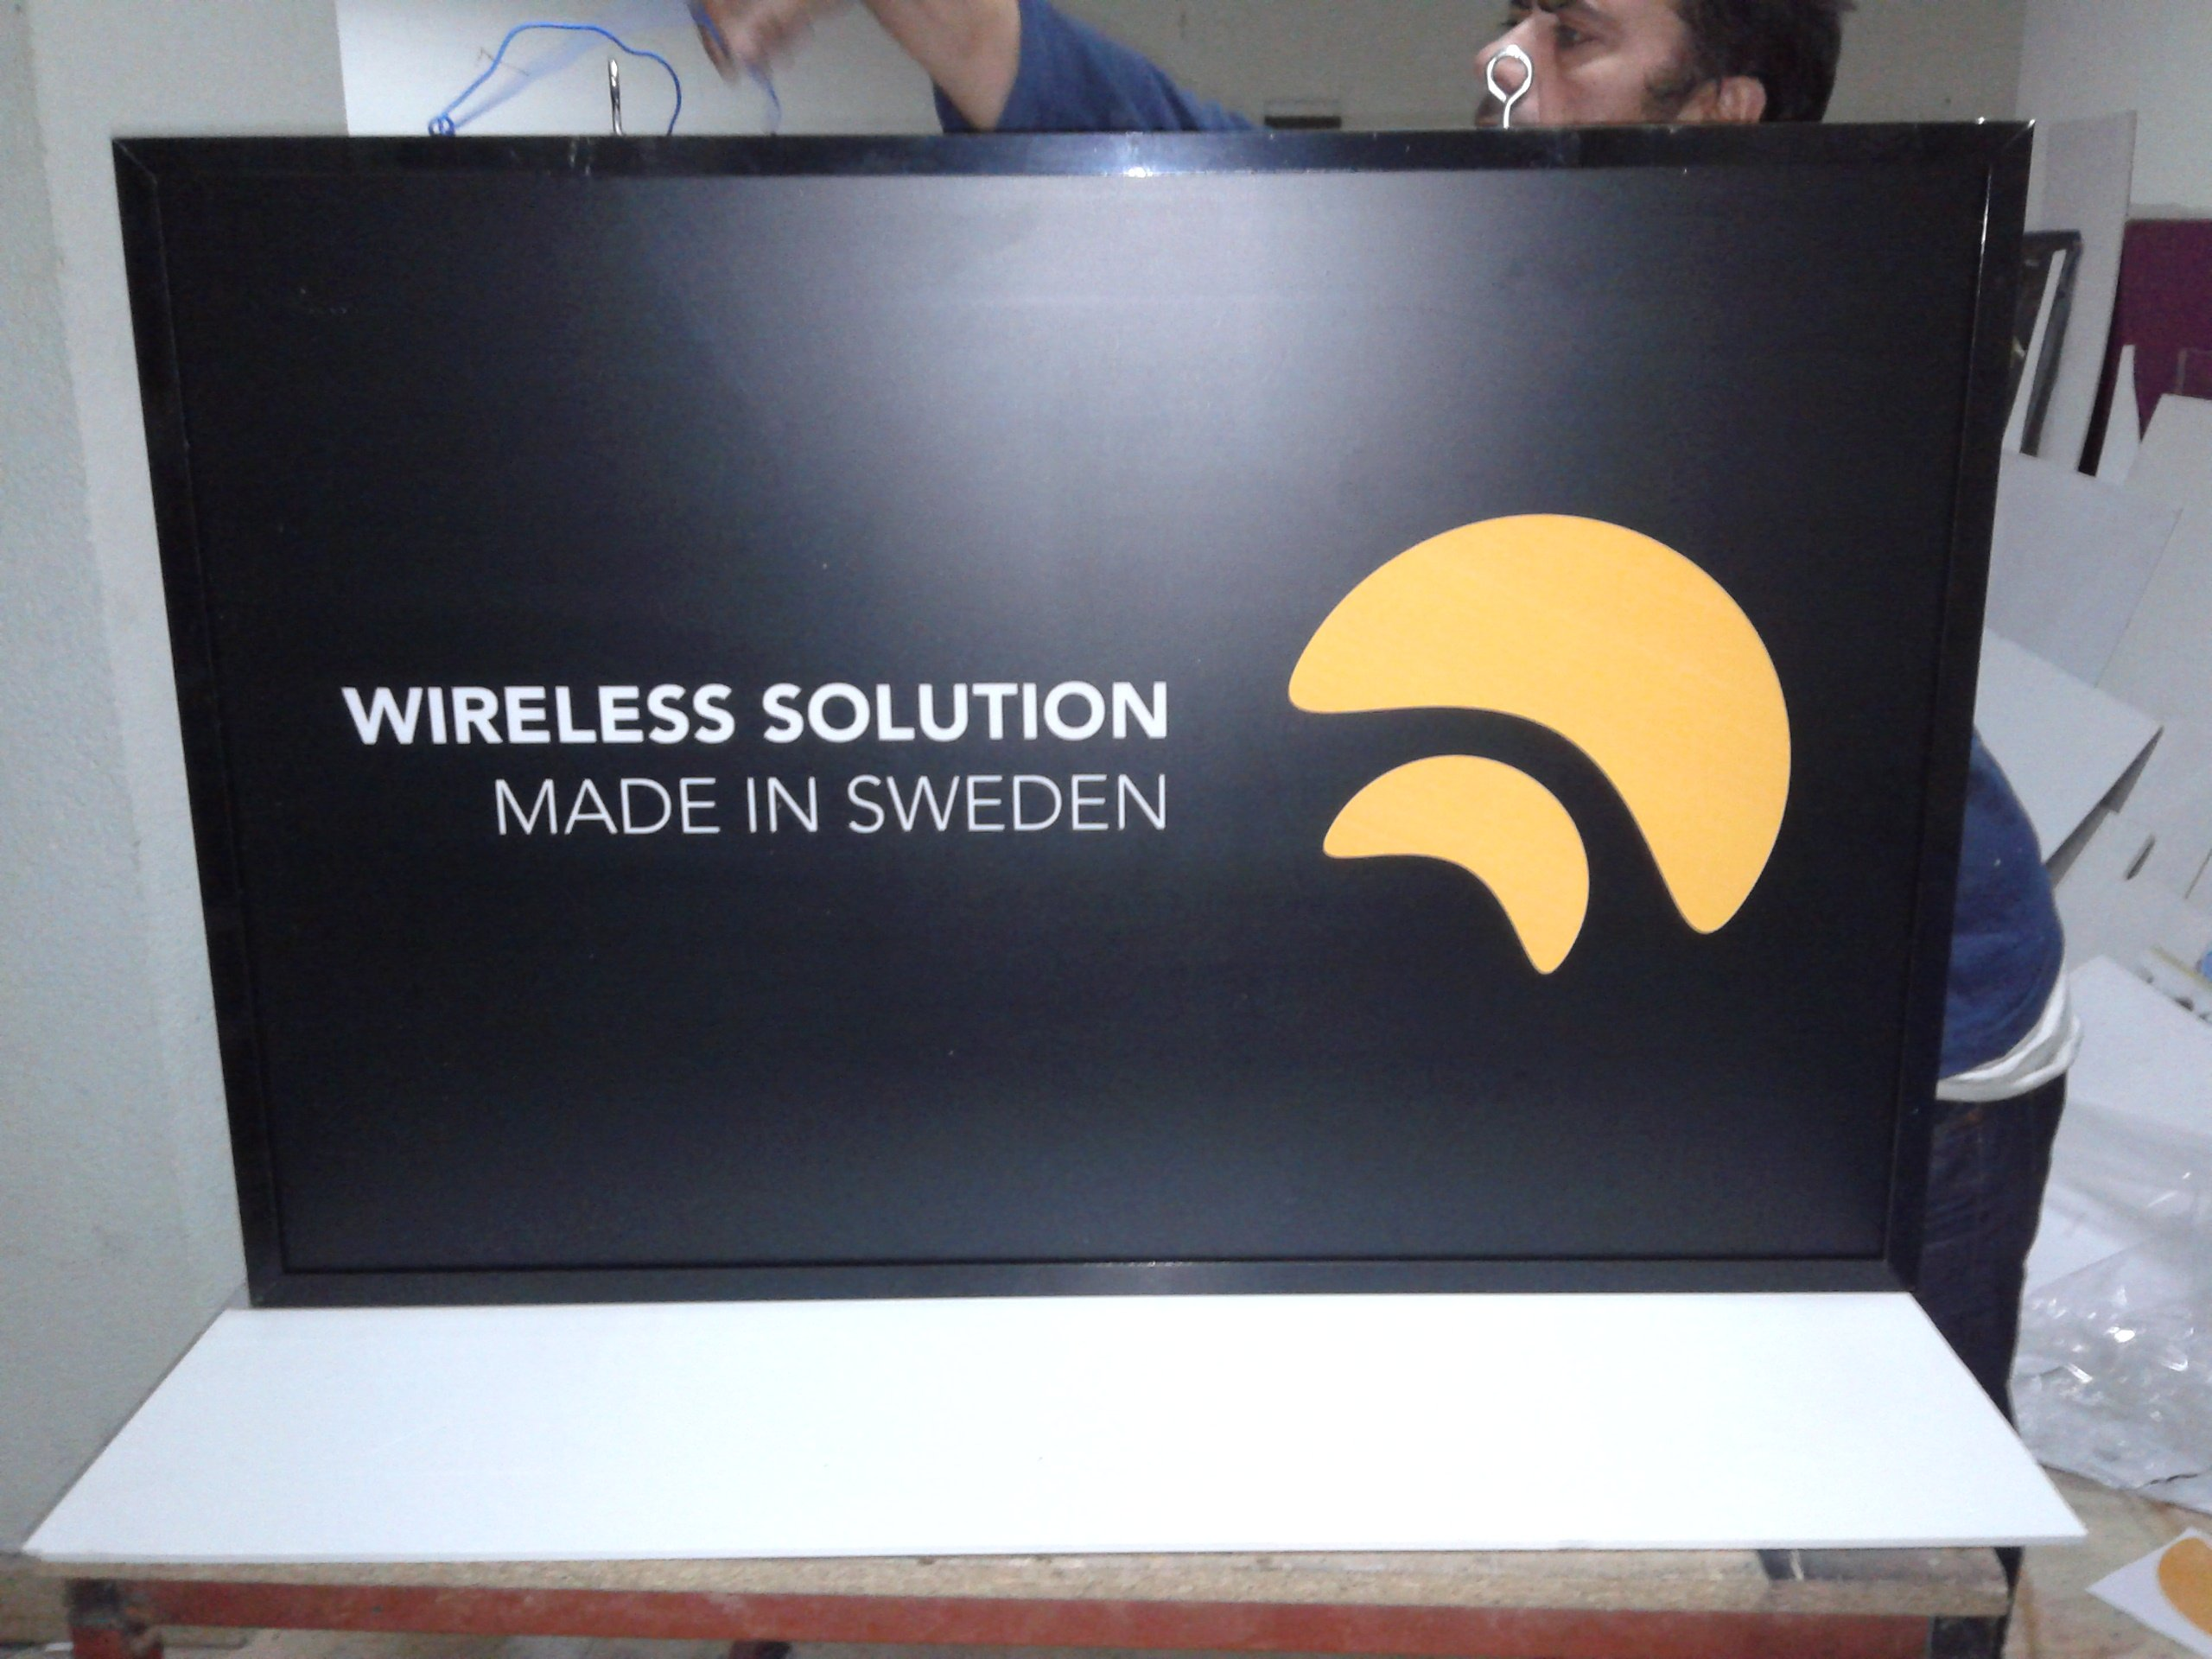 İsveç Wireless Solution Fener Tabela